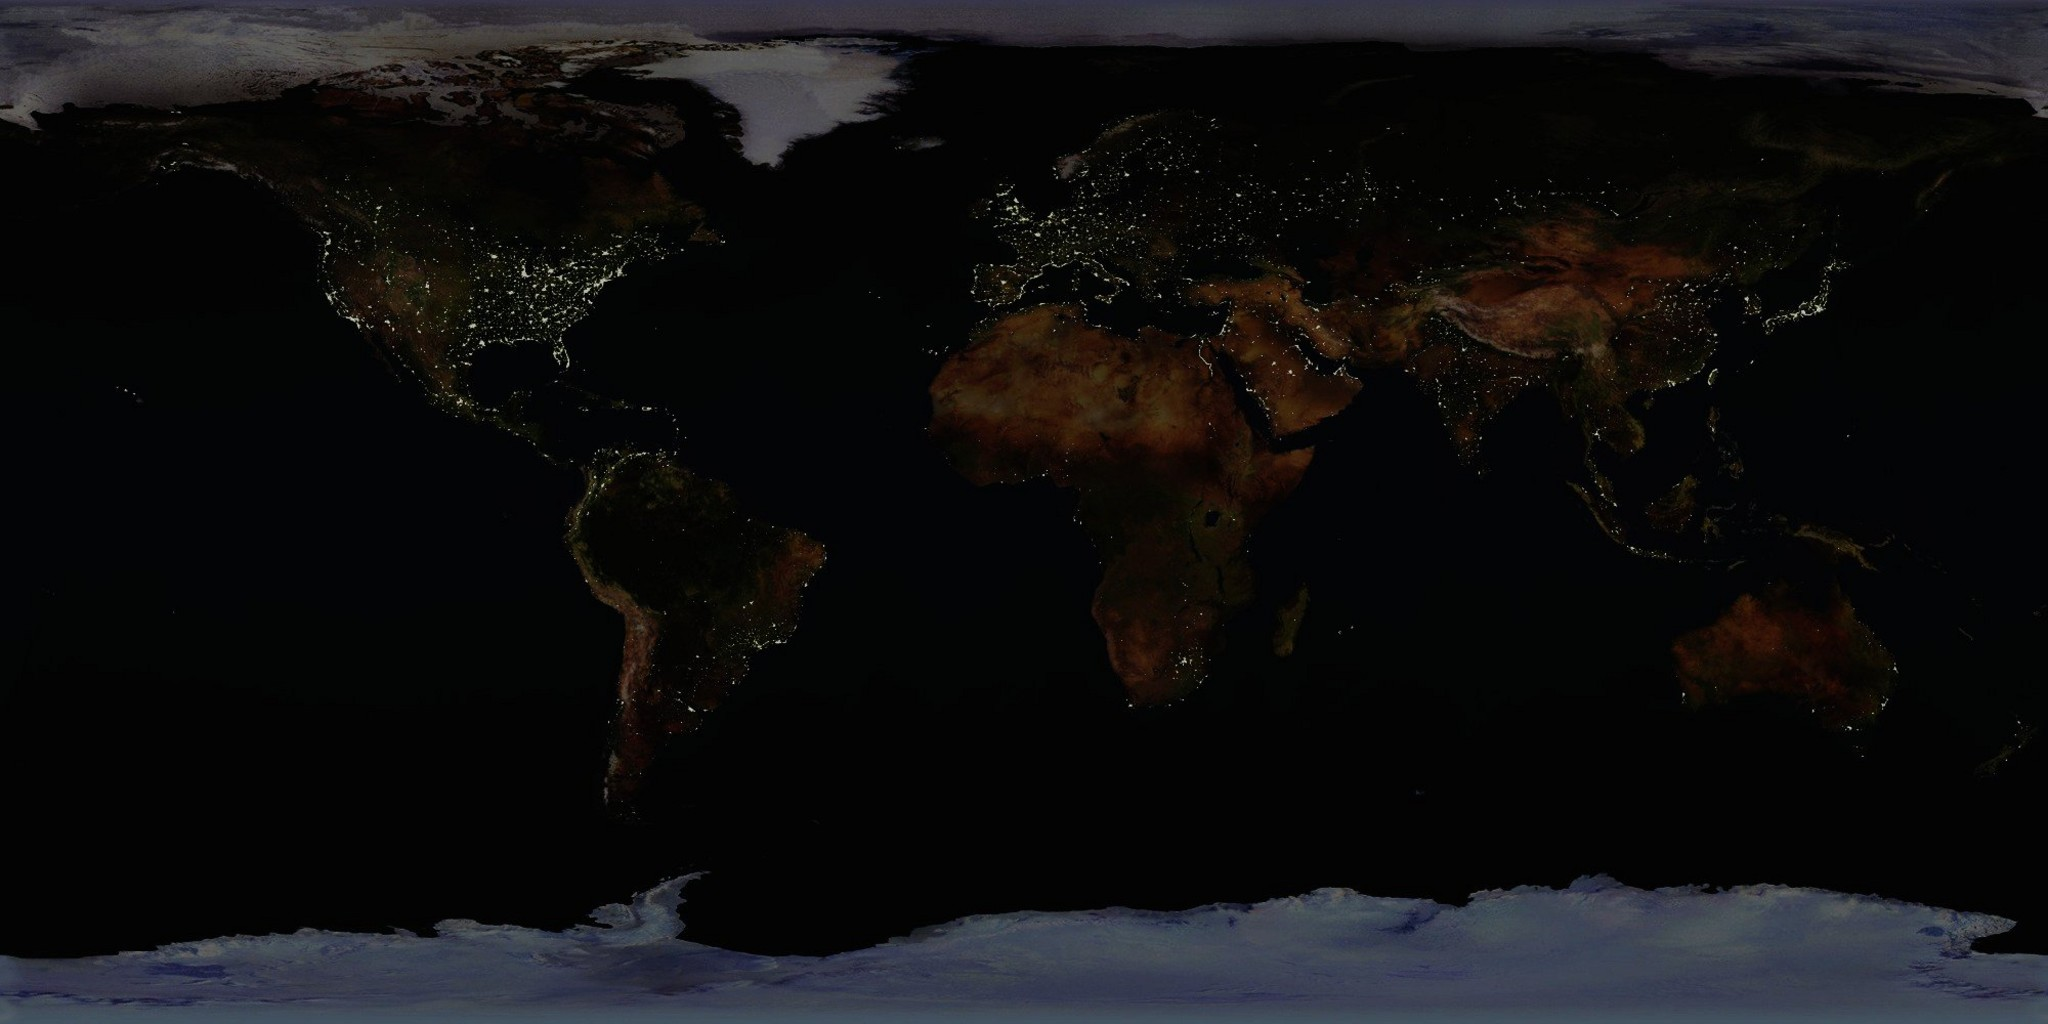 Xplanet maps night map for earth gumiabroncs Image collections